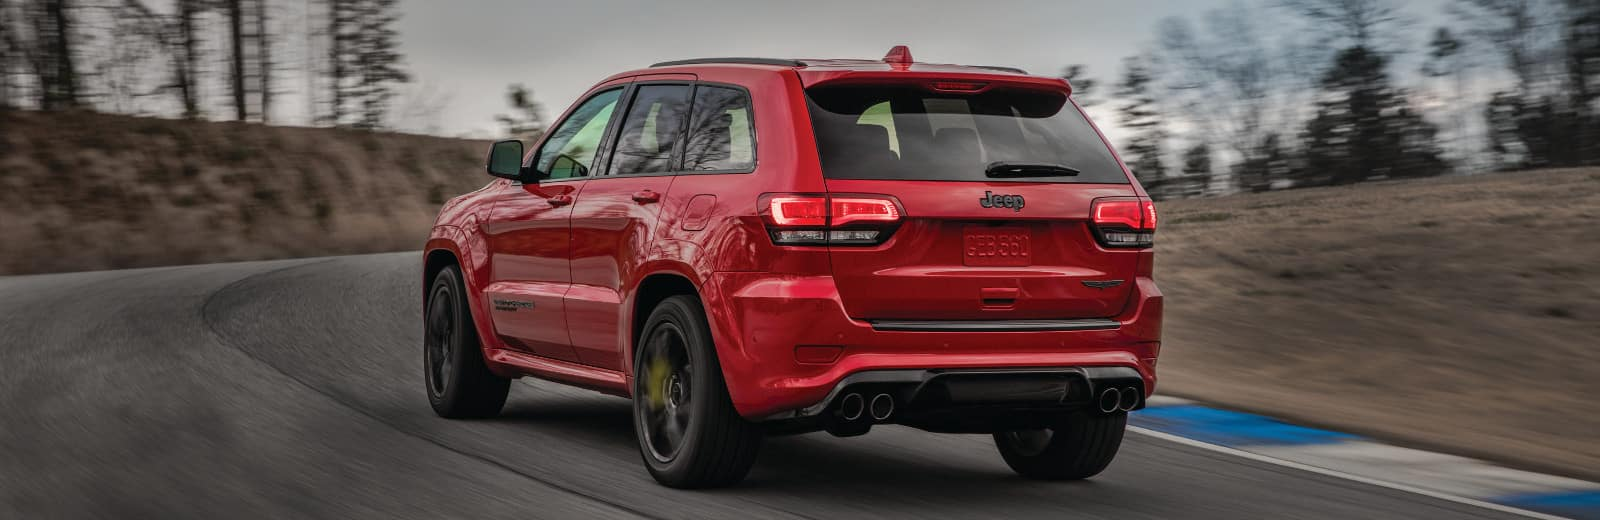 A red Jeep Grand Cherokee driving on a track